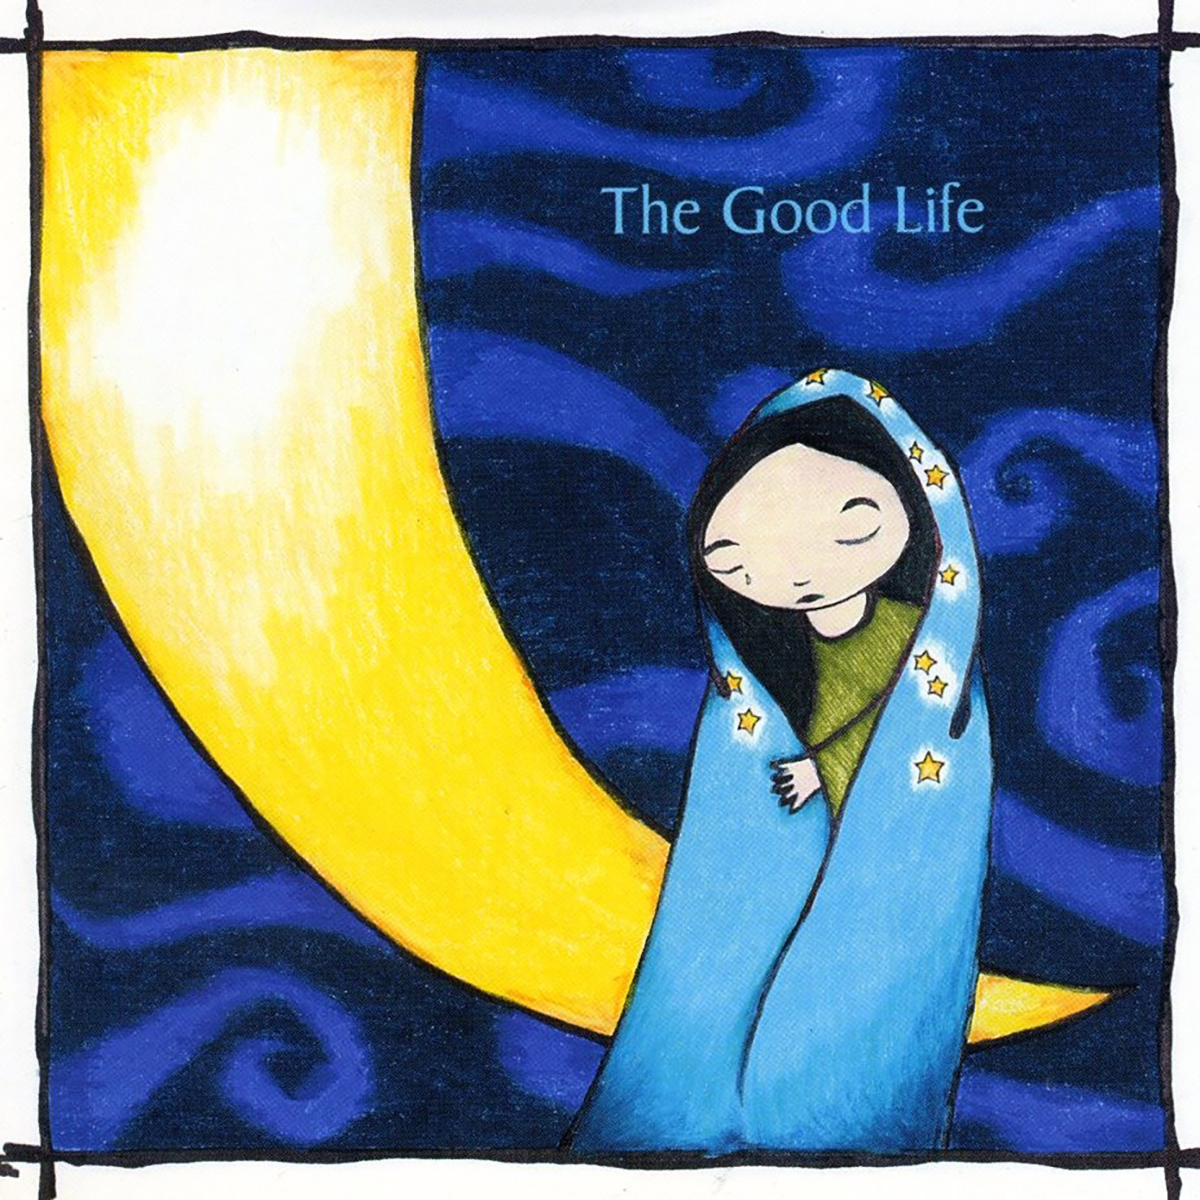 The Good Life - Novena On A Nocturn CD - The Good Life